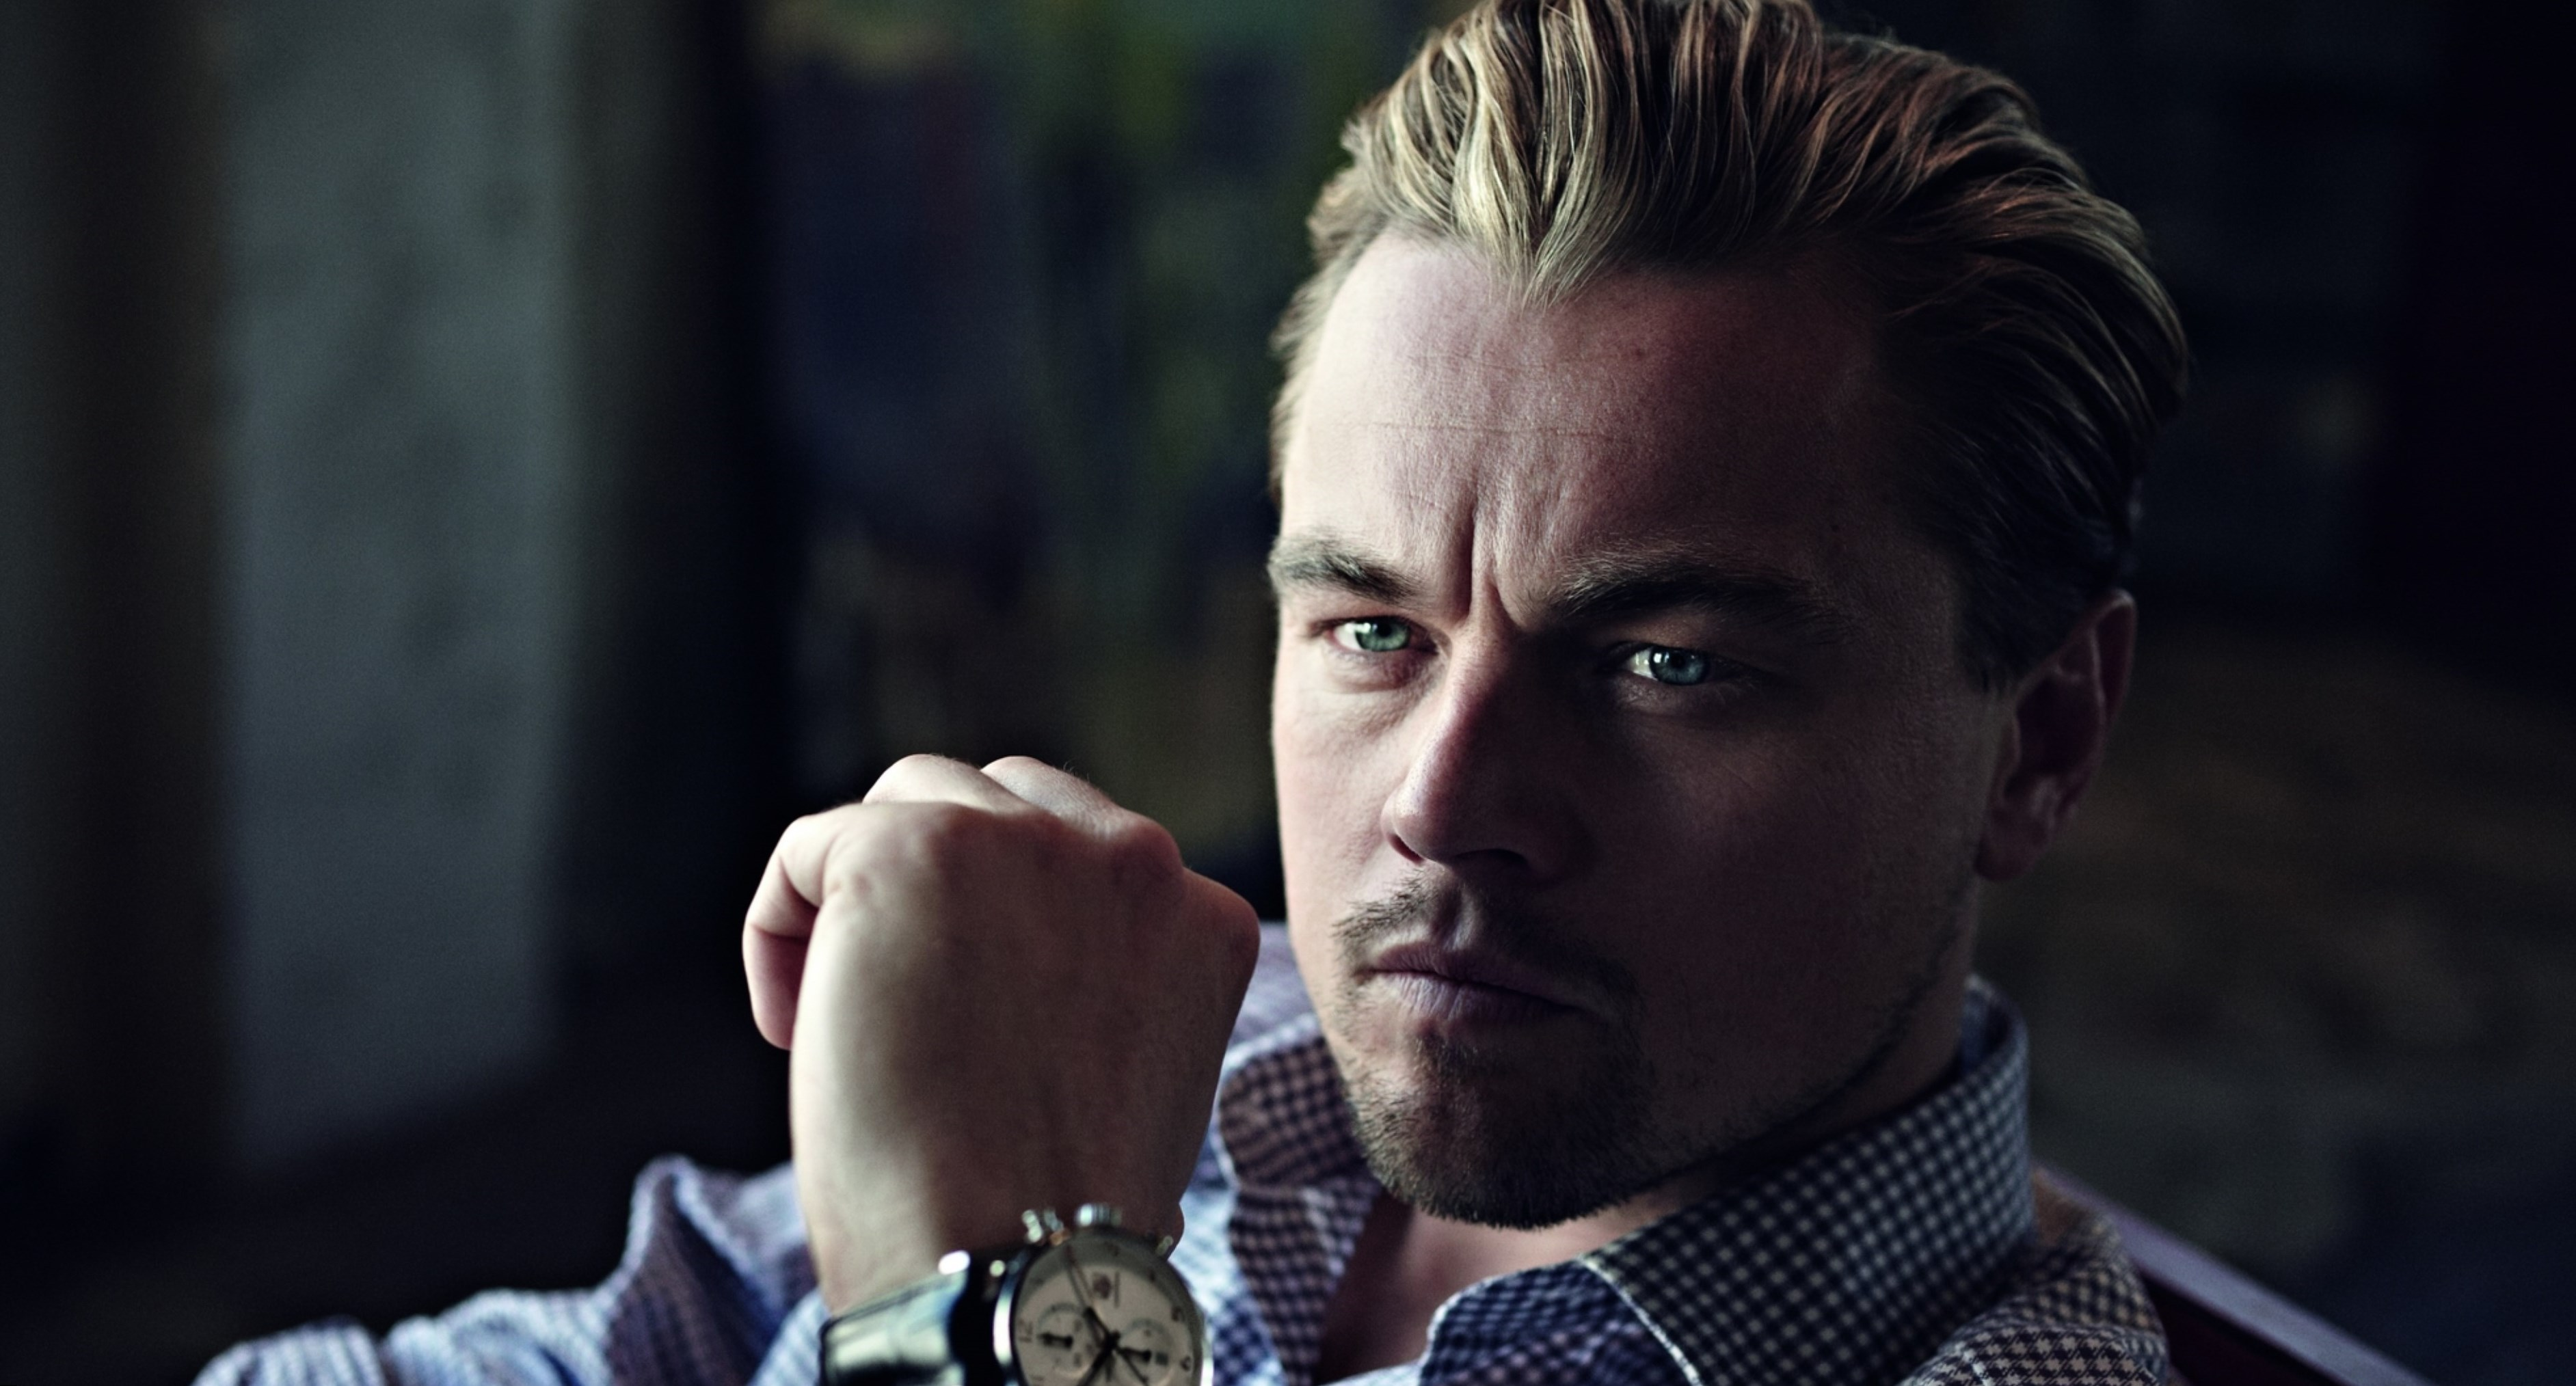 Leonardo DiCaprio - Height, Weight, Age